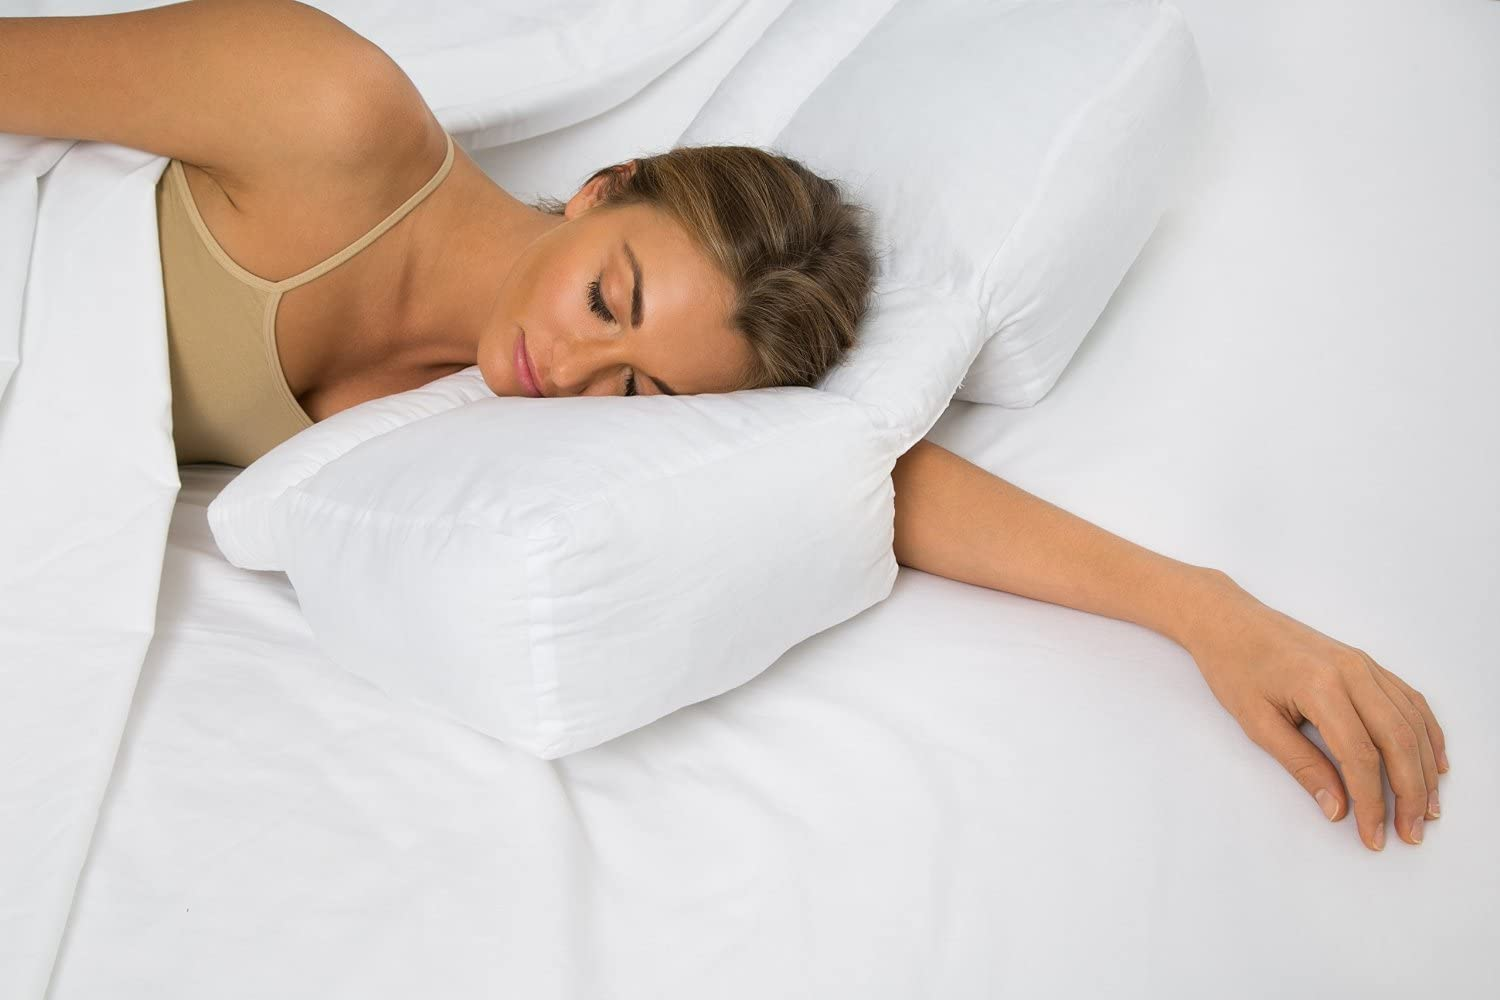 Better Sleep Pillow Free shipping anywhere in the nation Gel Fiber Desig Patented Online limited product Arm-Tunnel -